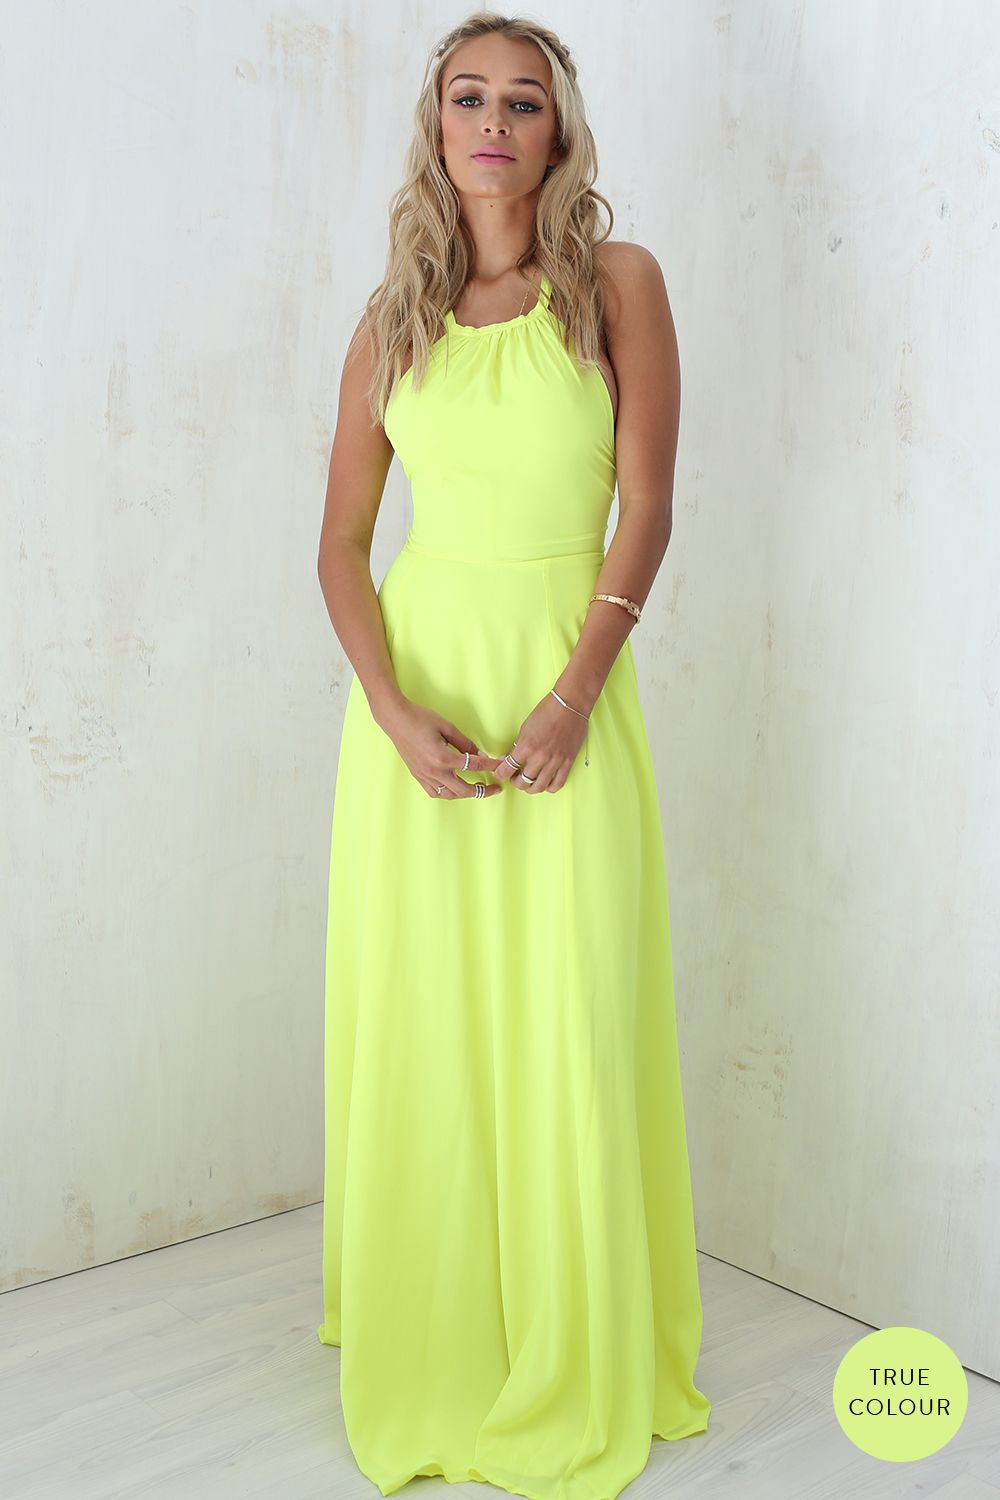 863223af1d A stunning full length dress by Tinaholy. A  san francisco b929a 92138 Make  a statement in this beautiful